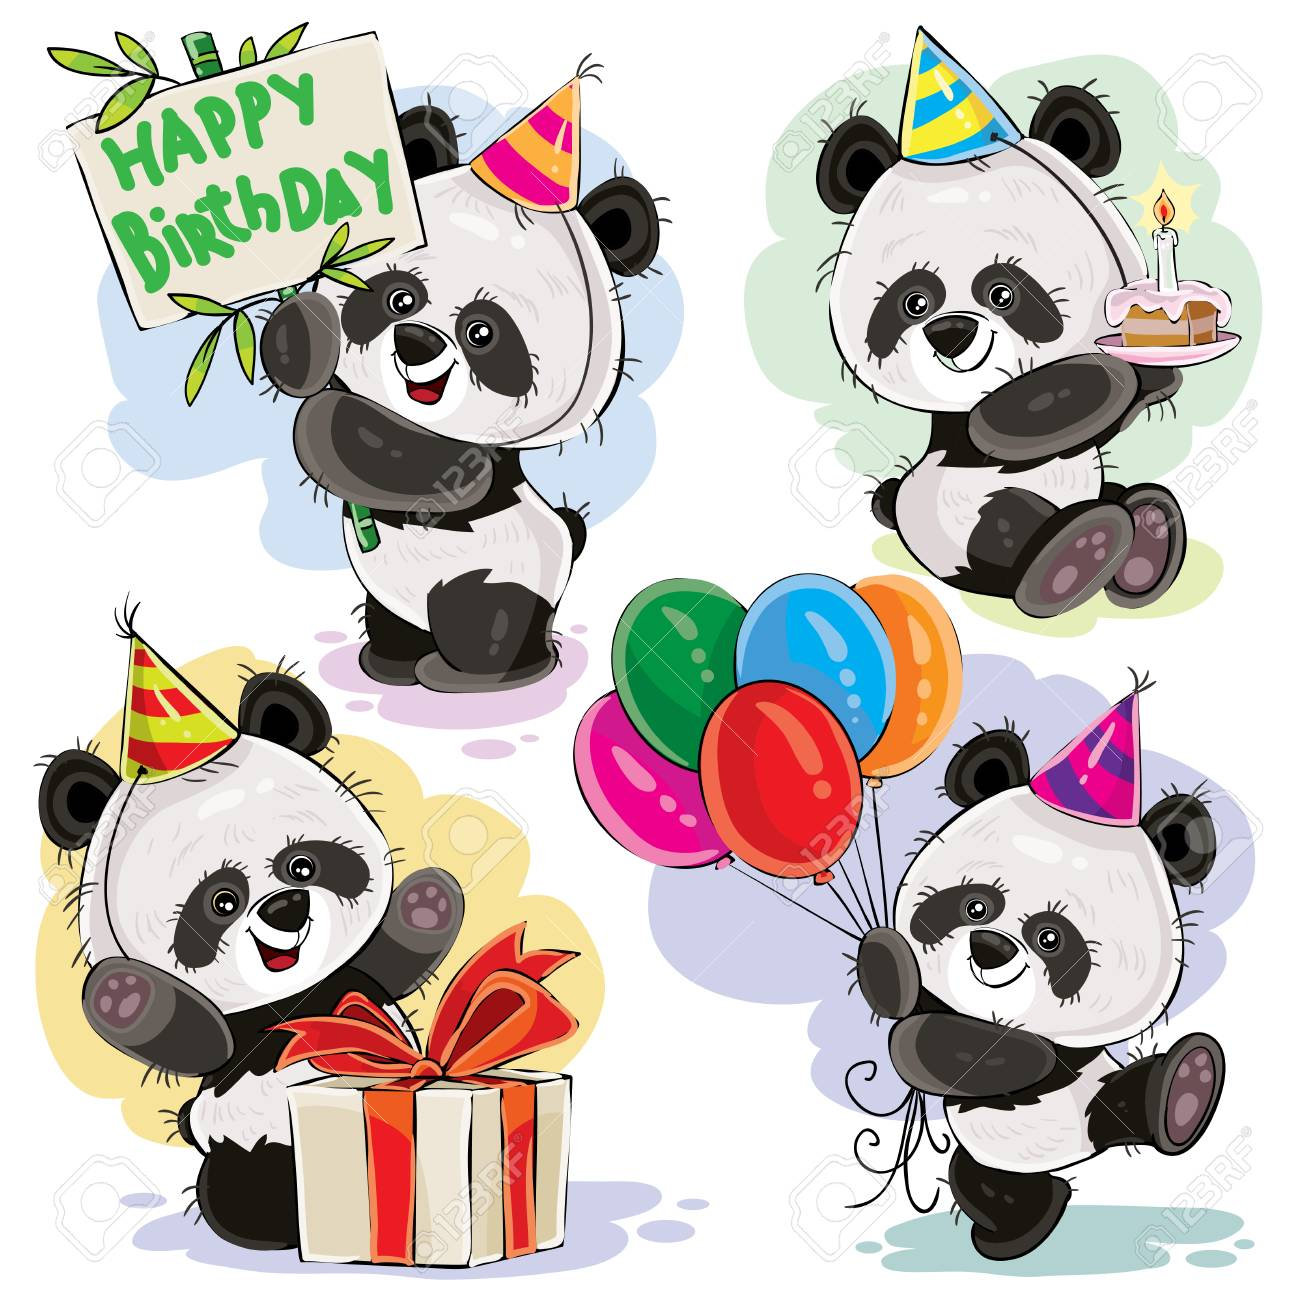 Cute Panda Bears Baby Cartoon Characters Celebrating Birthday With Cake Balloons And Present In Box